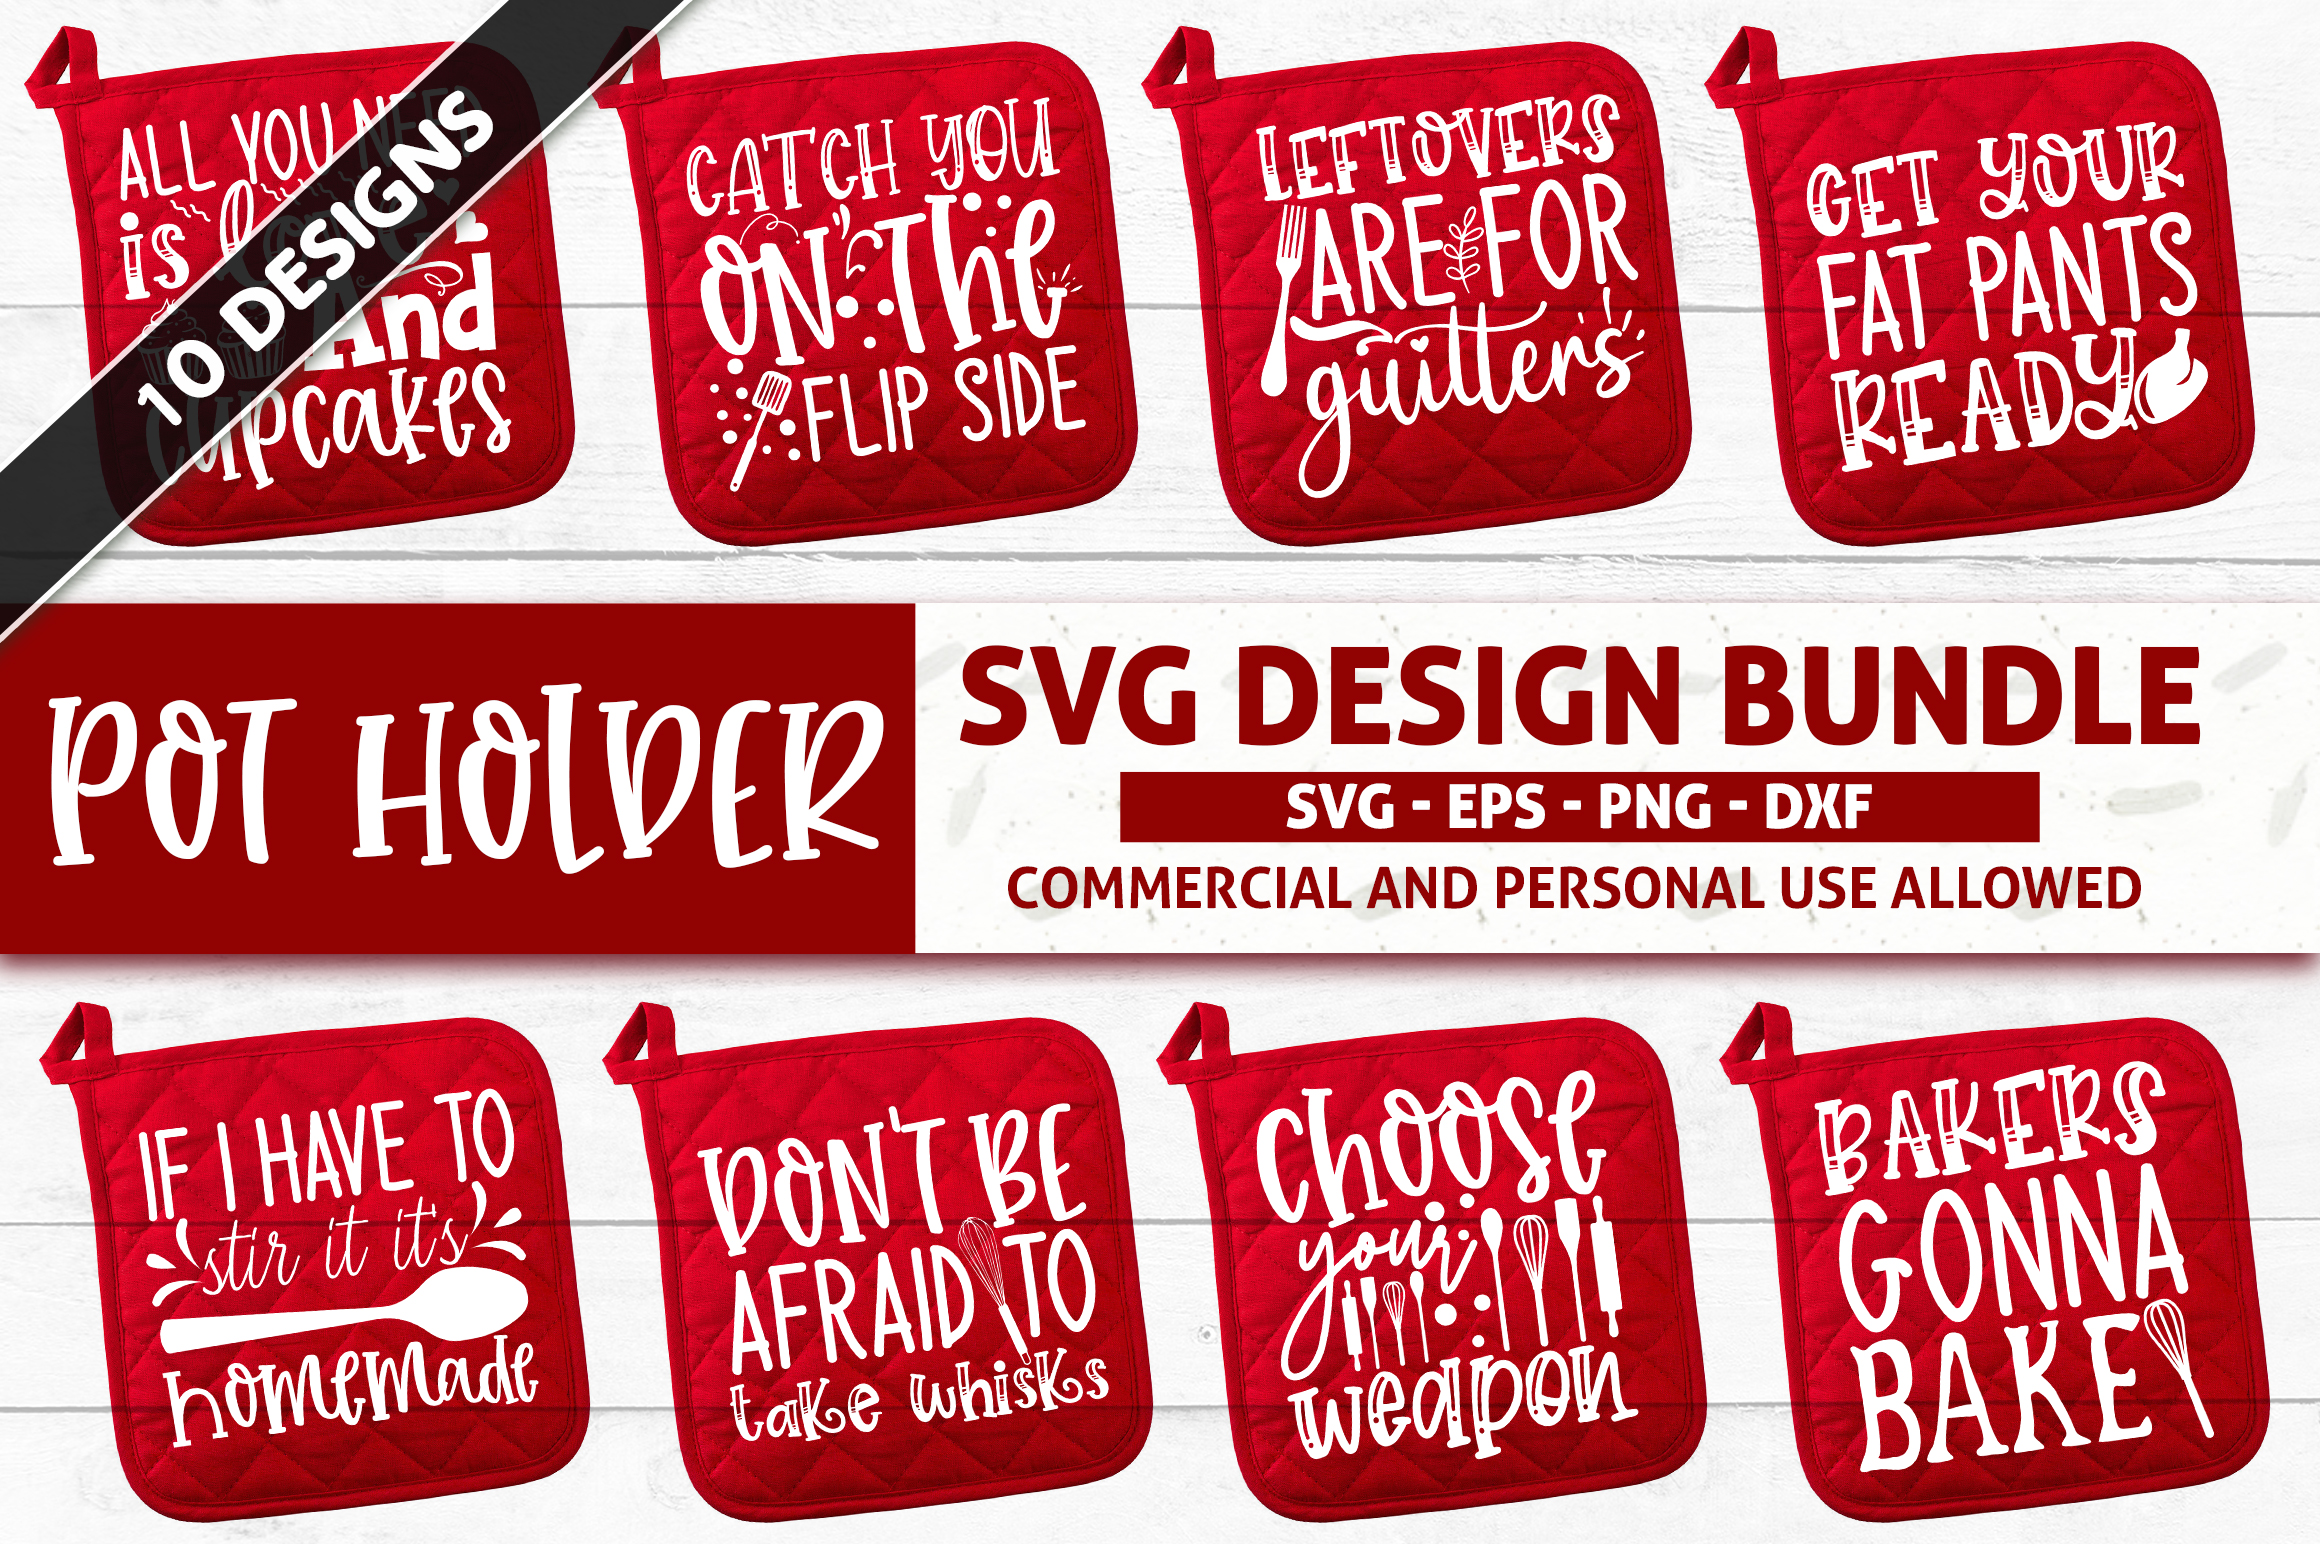 Download Free Pot Holder Design Bundle Graphic By Subornastudio Creative Fabrica for Cricut Explore, Silhouette and other cutting machines.